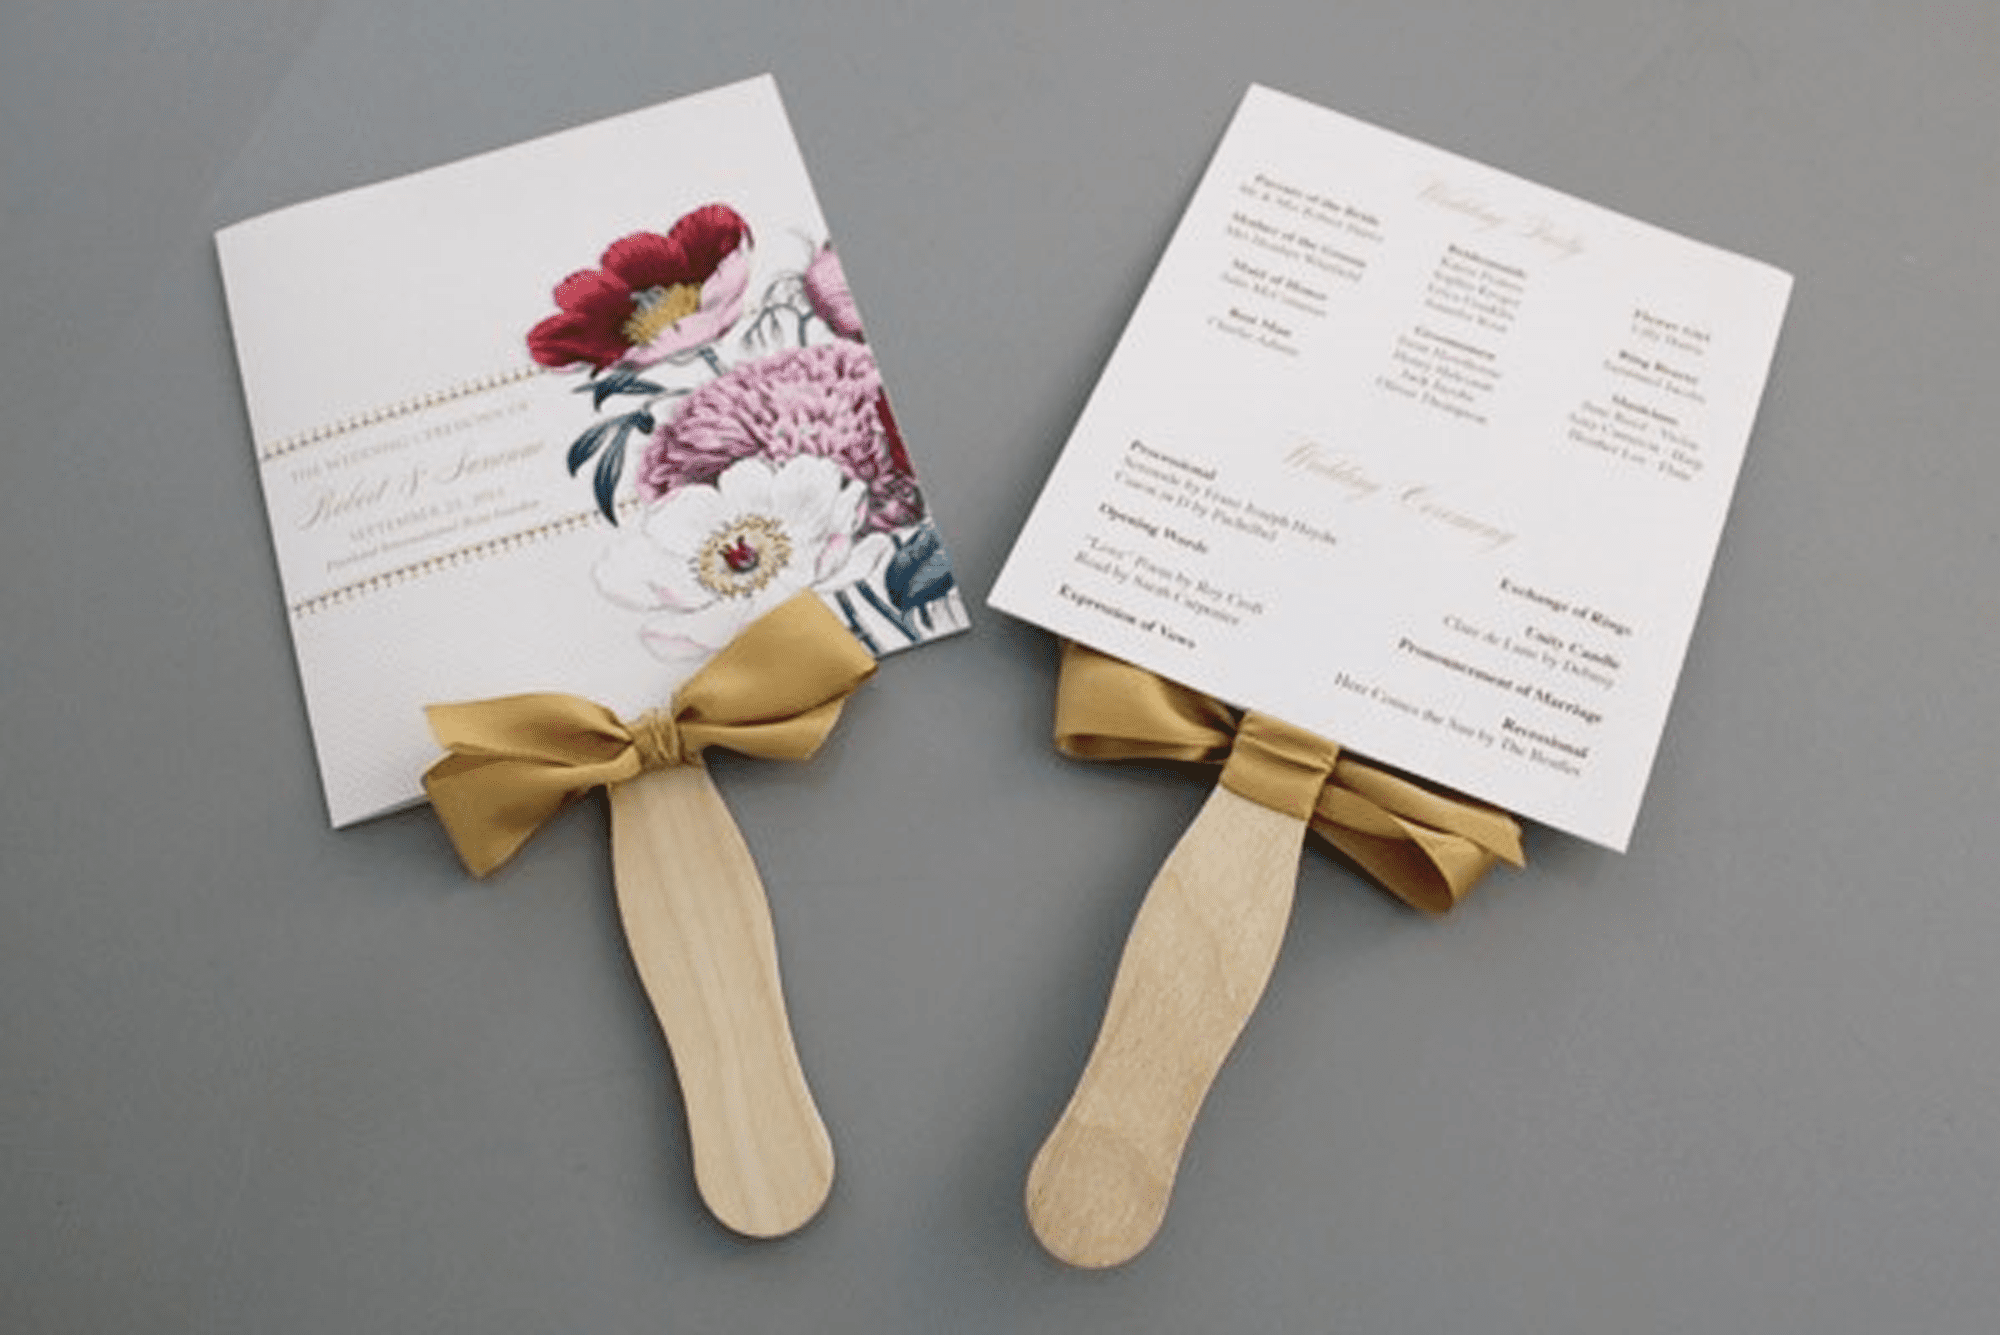 Two paddles with wedding programs attached to them